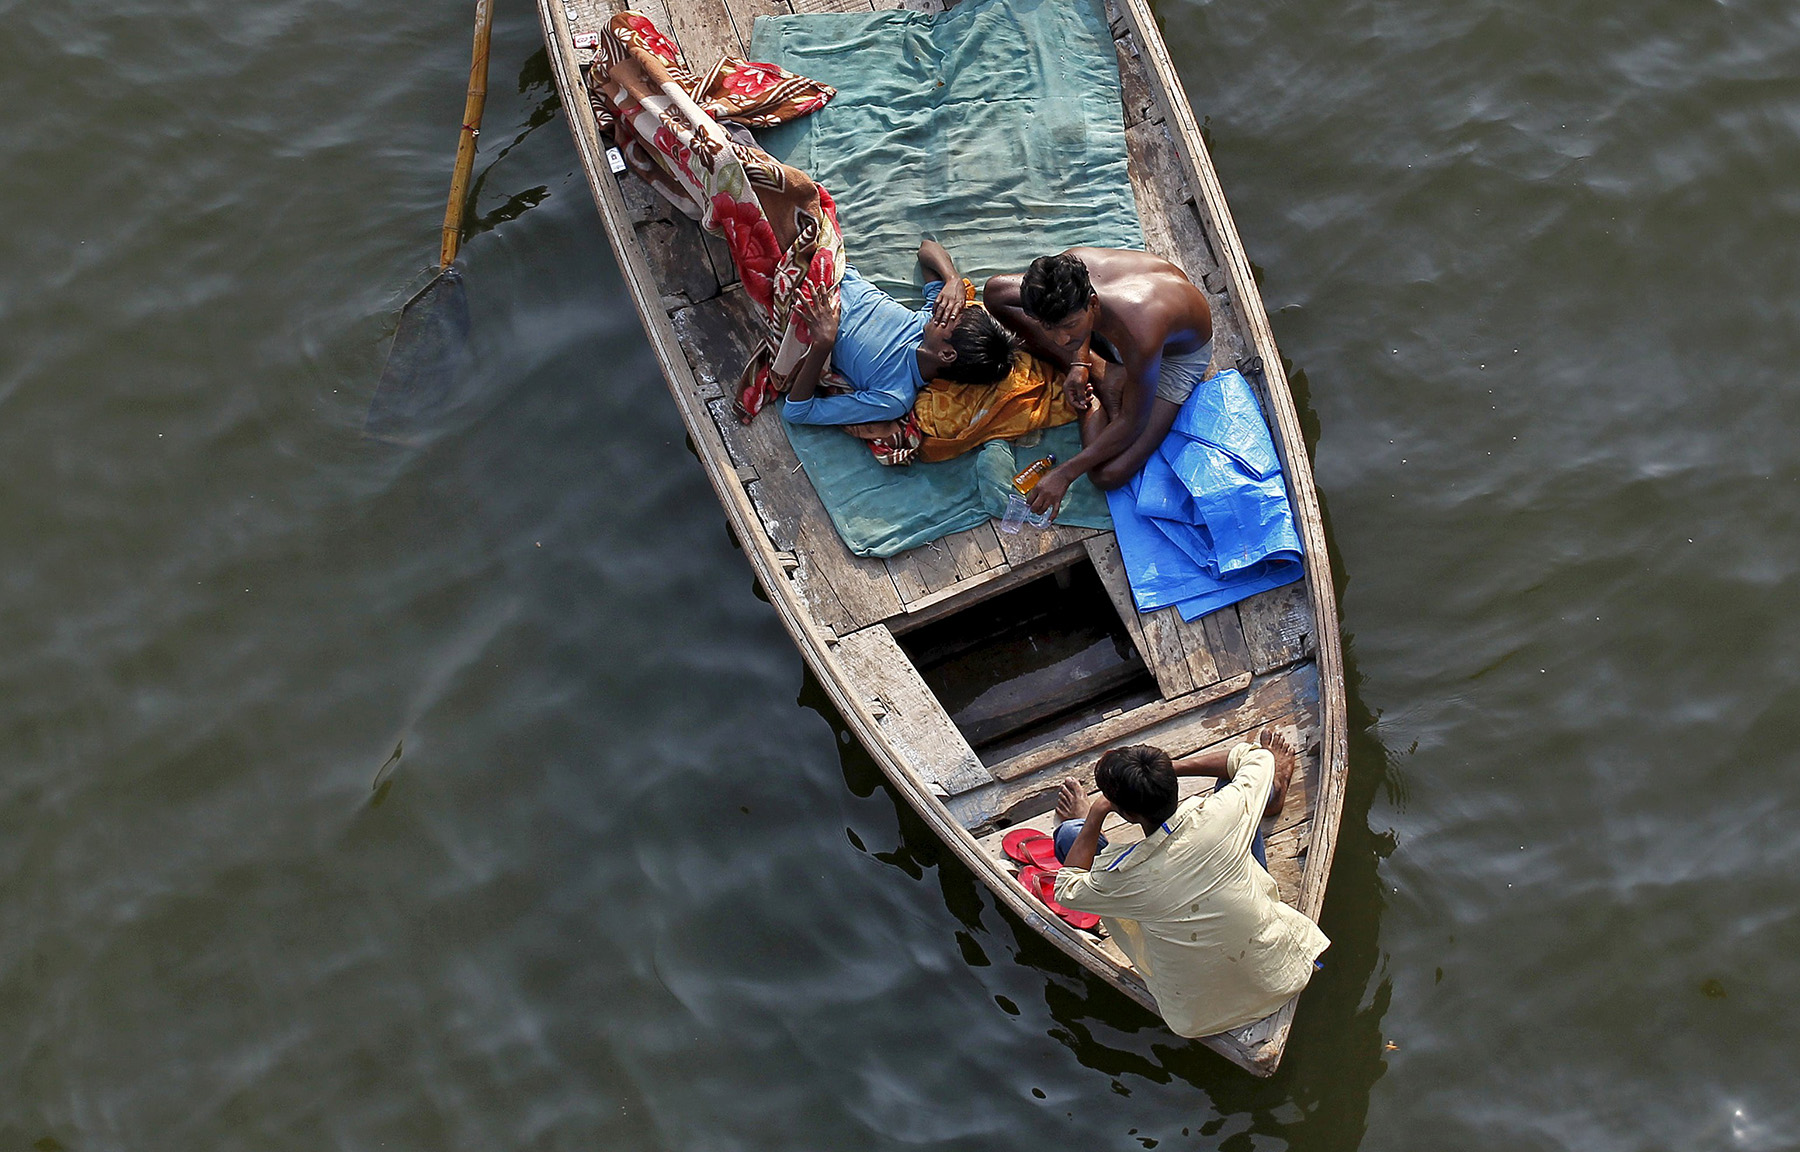 Fishermen rest on a boat after fishing in the waters of river Yamuna during early morning in Allahabad